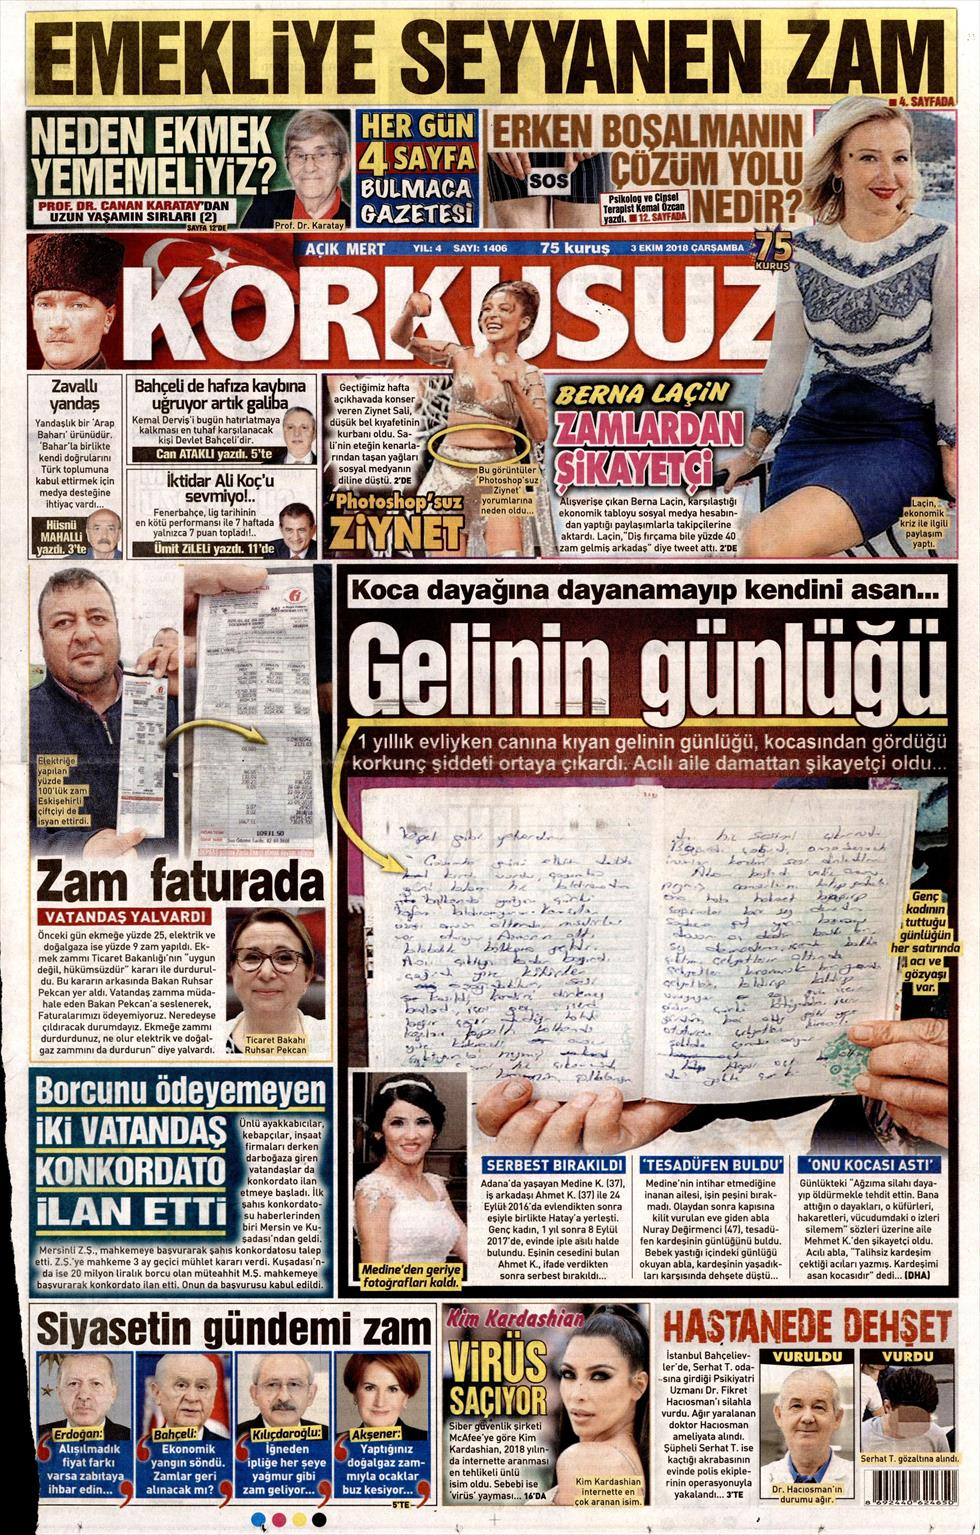 /data/newspapers/korkusuz.jpg